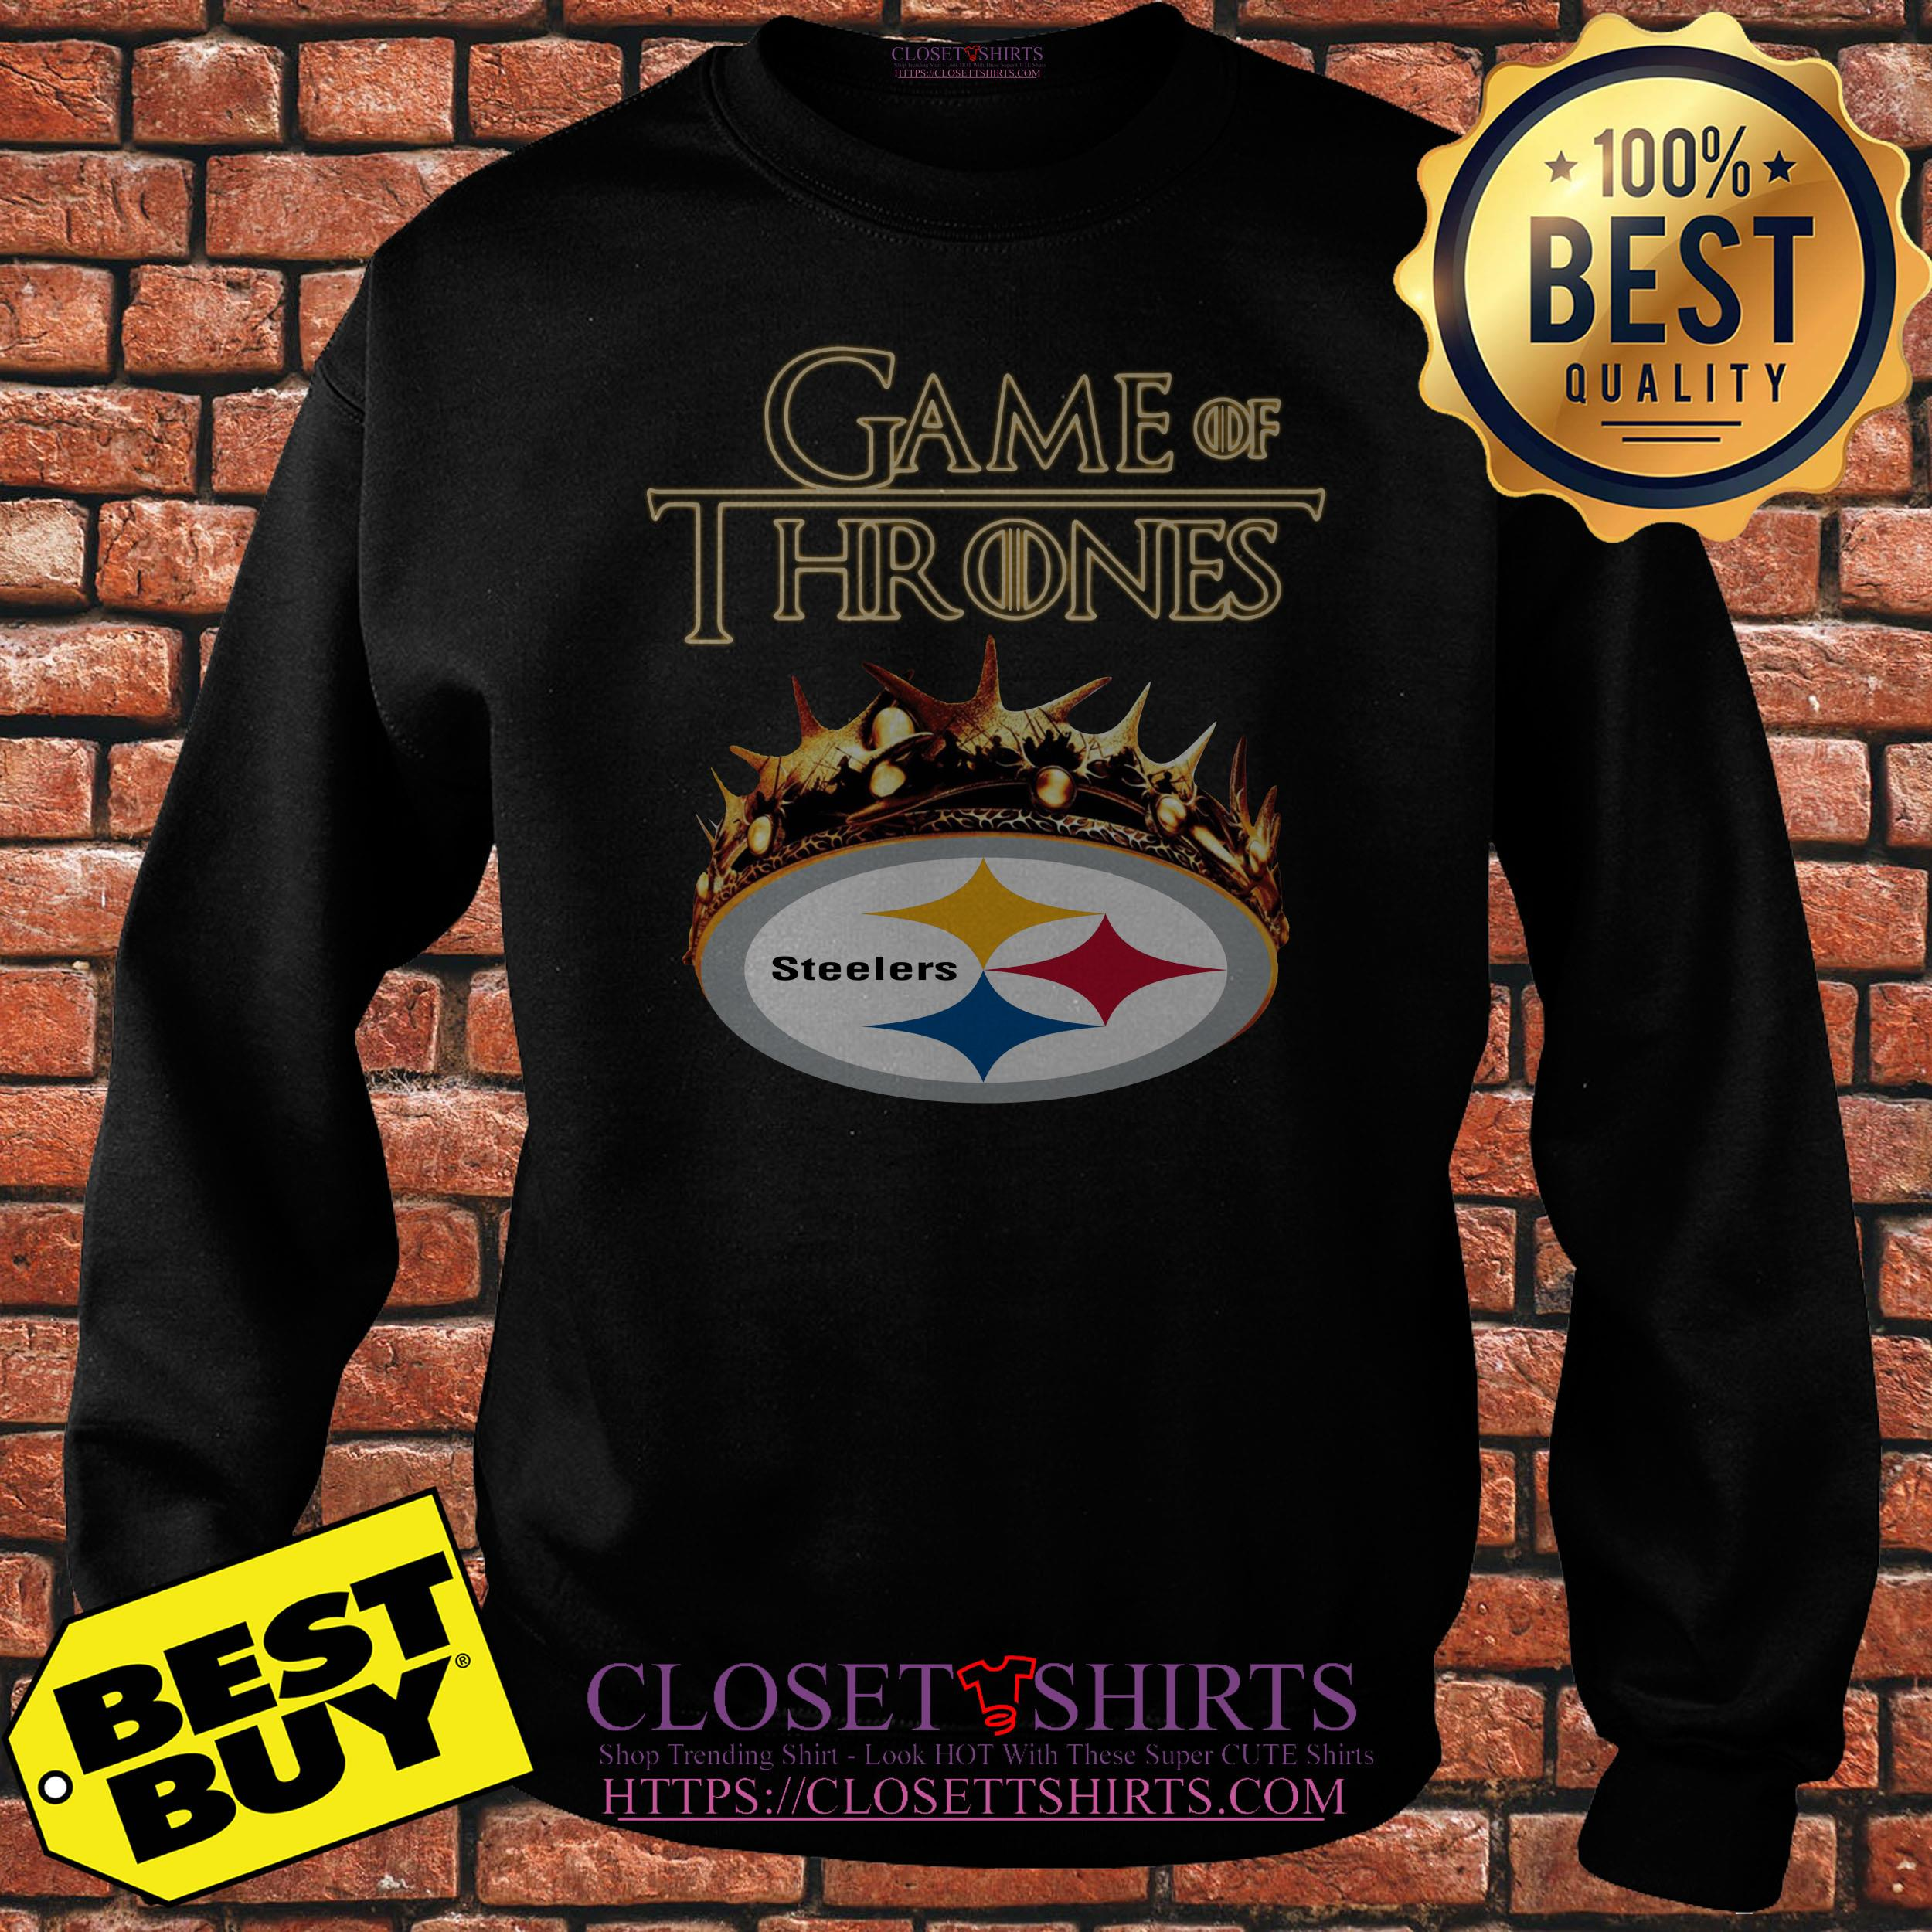 97cc94d02 ... Game Of Thrones Crown Pittsburgh Steelers Sweatshirt